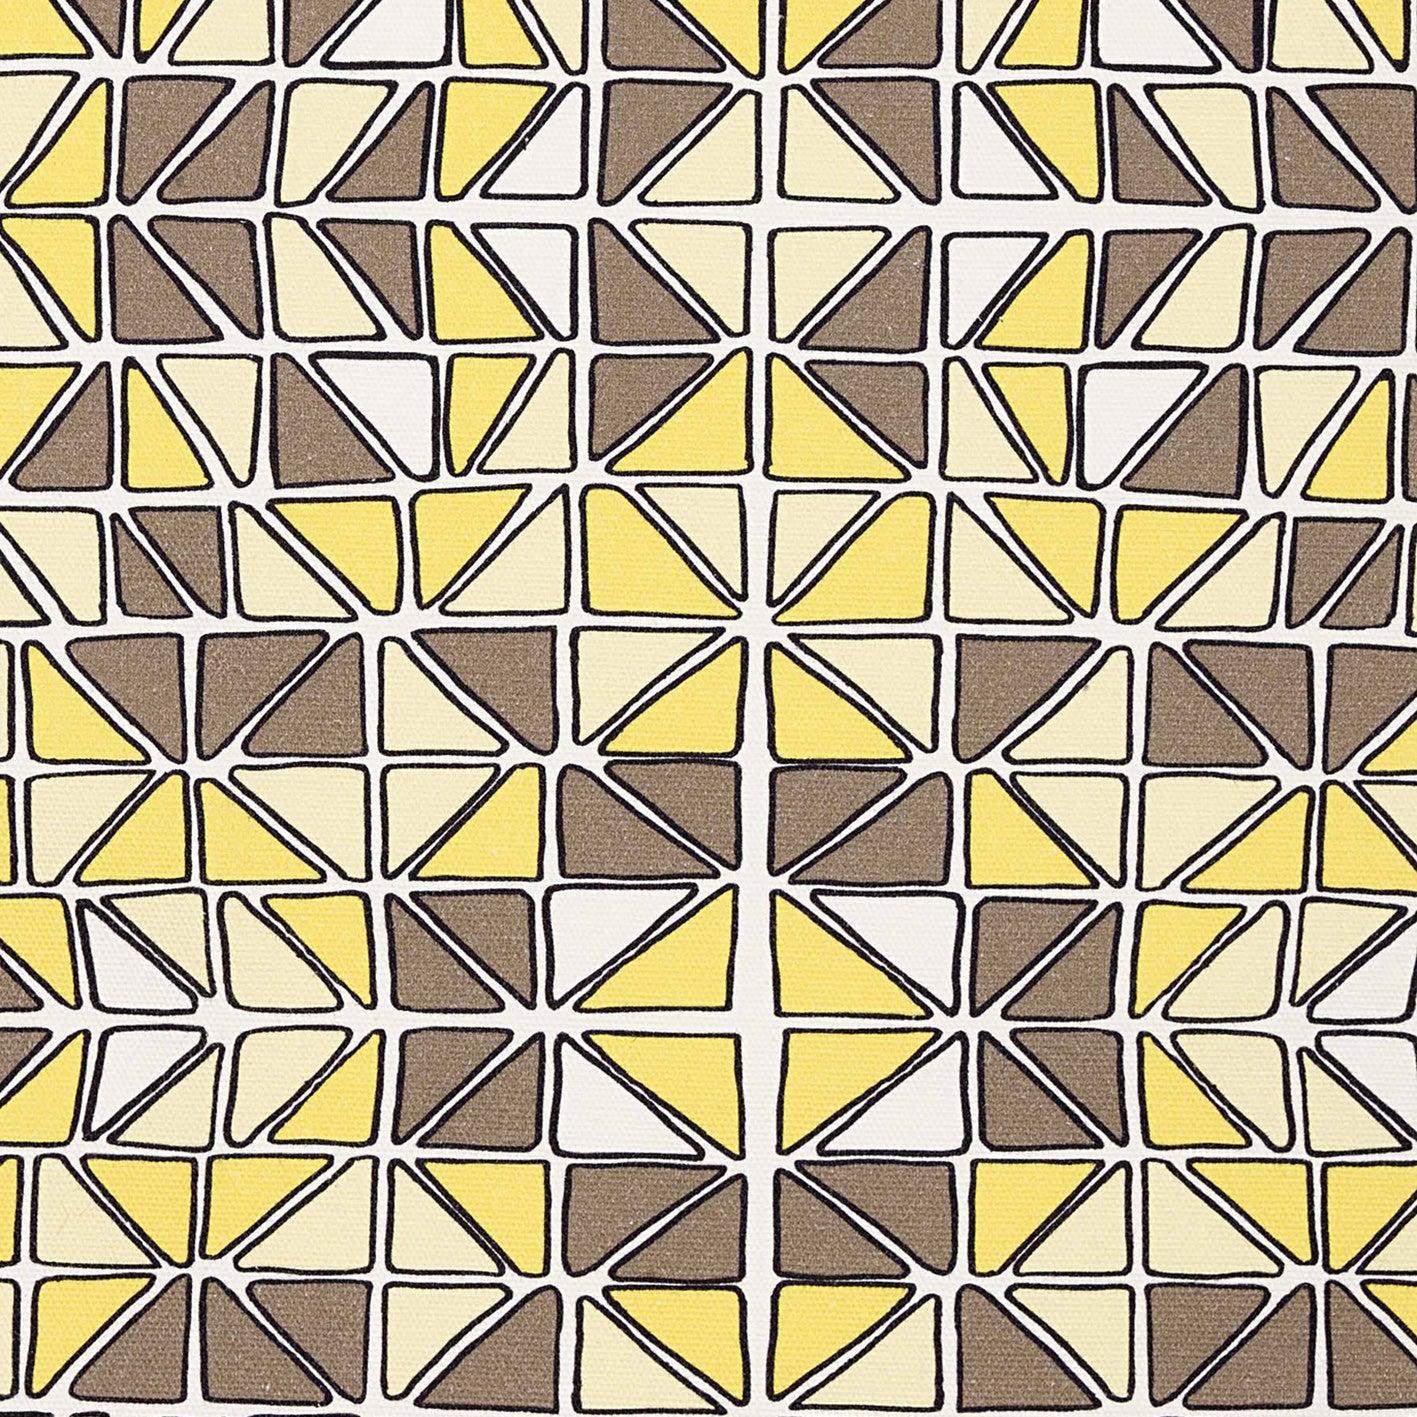 Mosaic Stained Glass Pattern Cotton Linen Fabric by the Meter - Maize Yellow & Grey